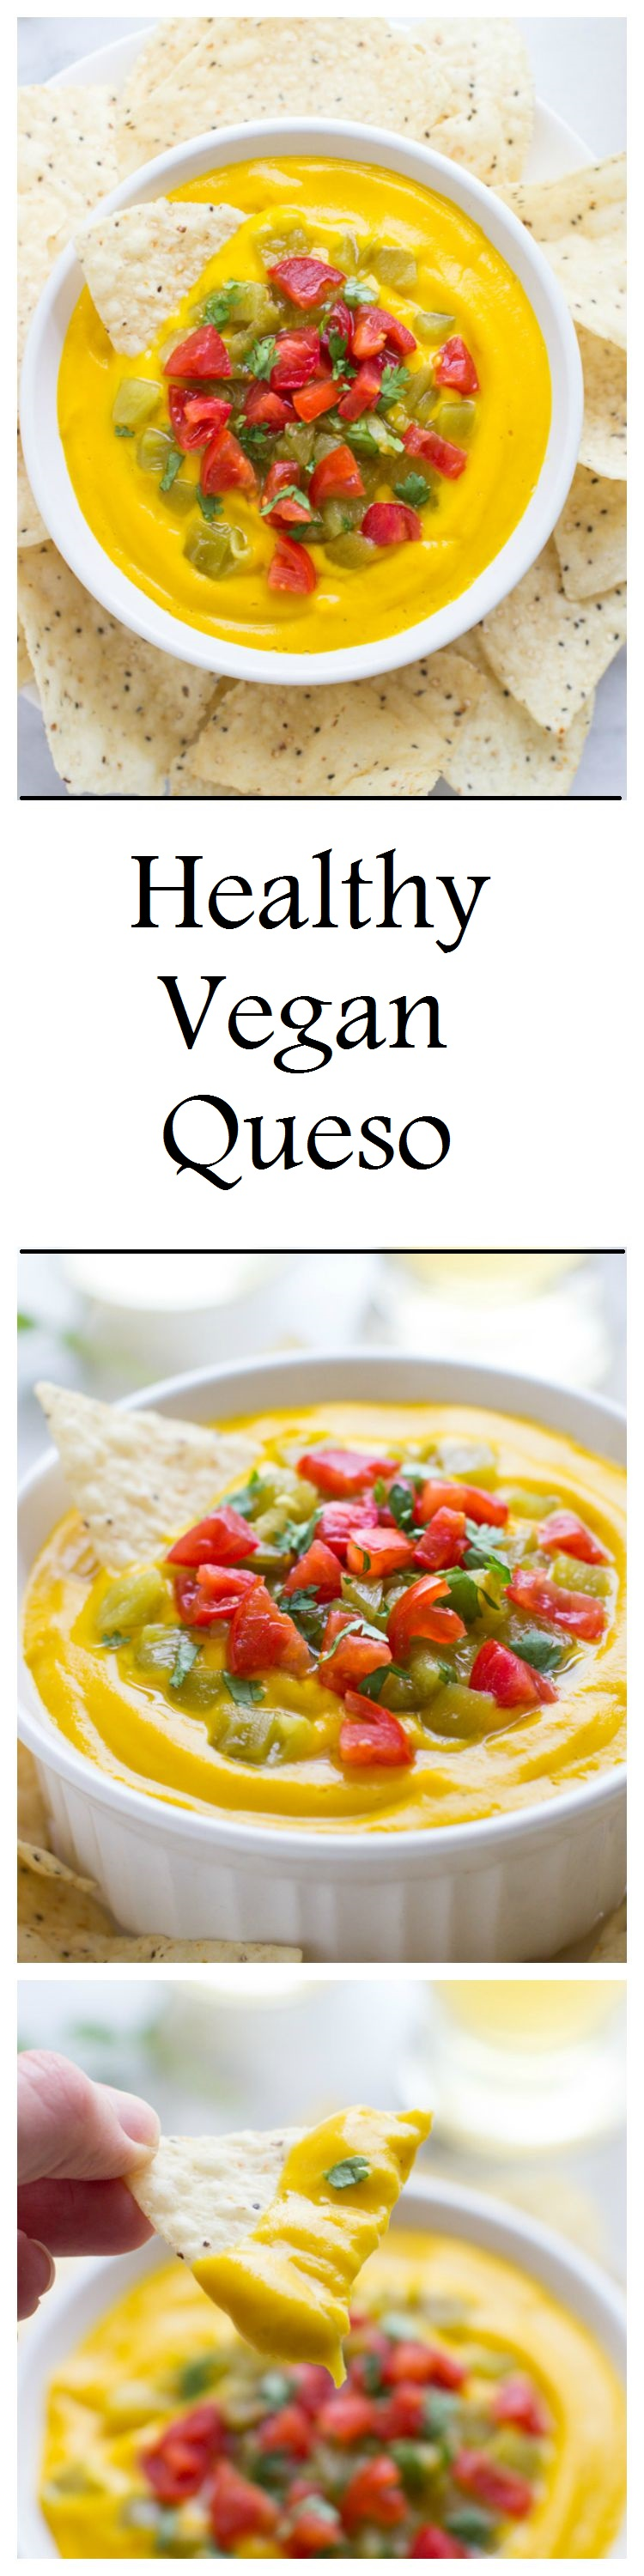 Healthy Vegan Queso- super silky and so delicious! #nutfree #dairyfree #paleo